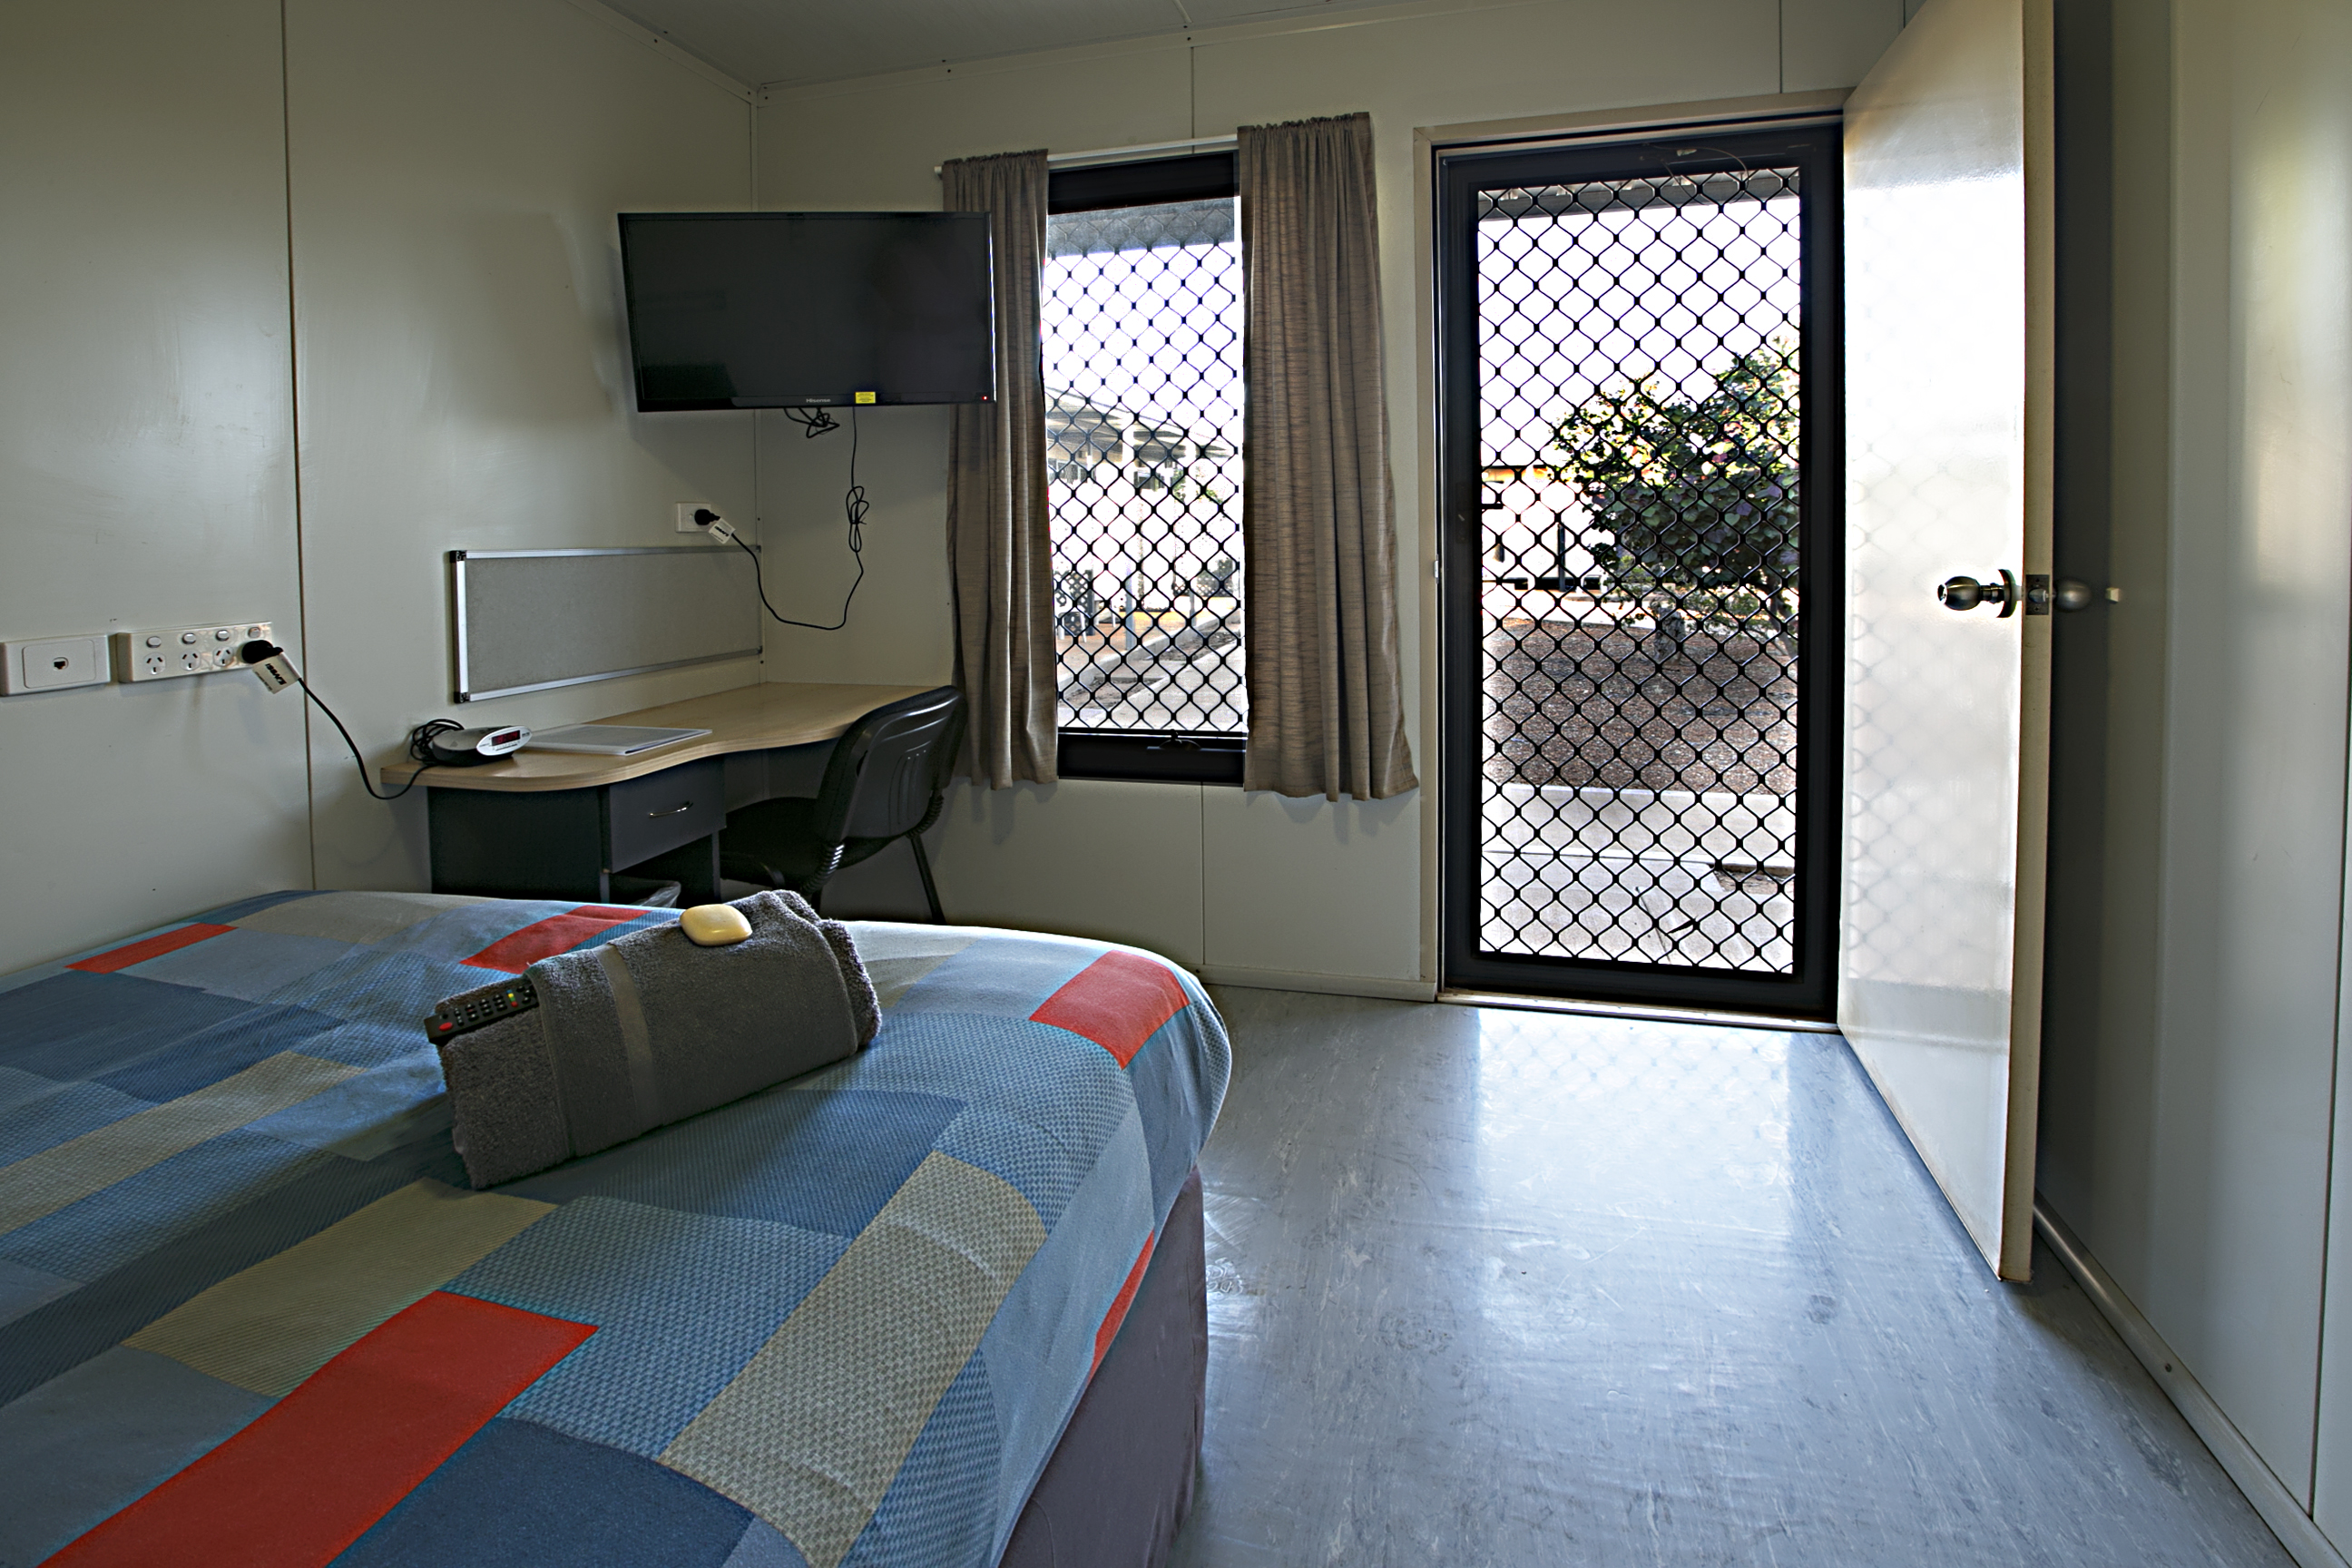 Searipple Room with Bed and Television